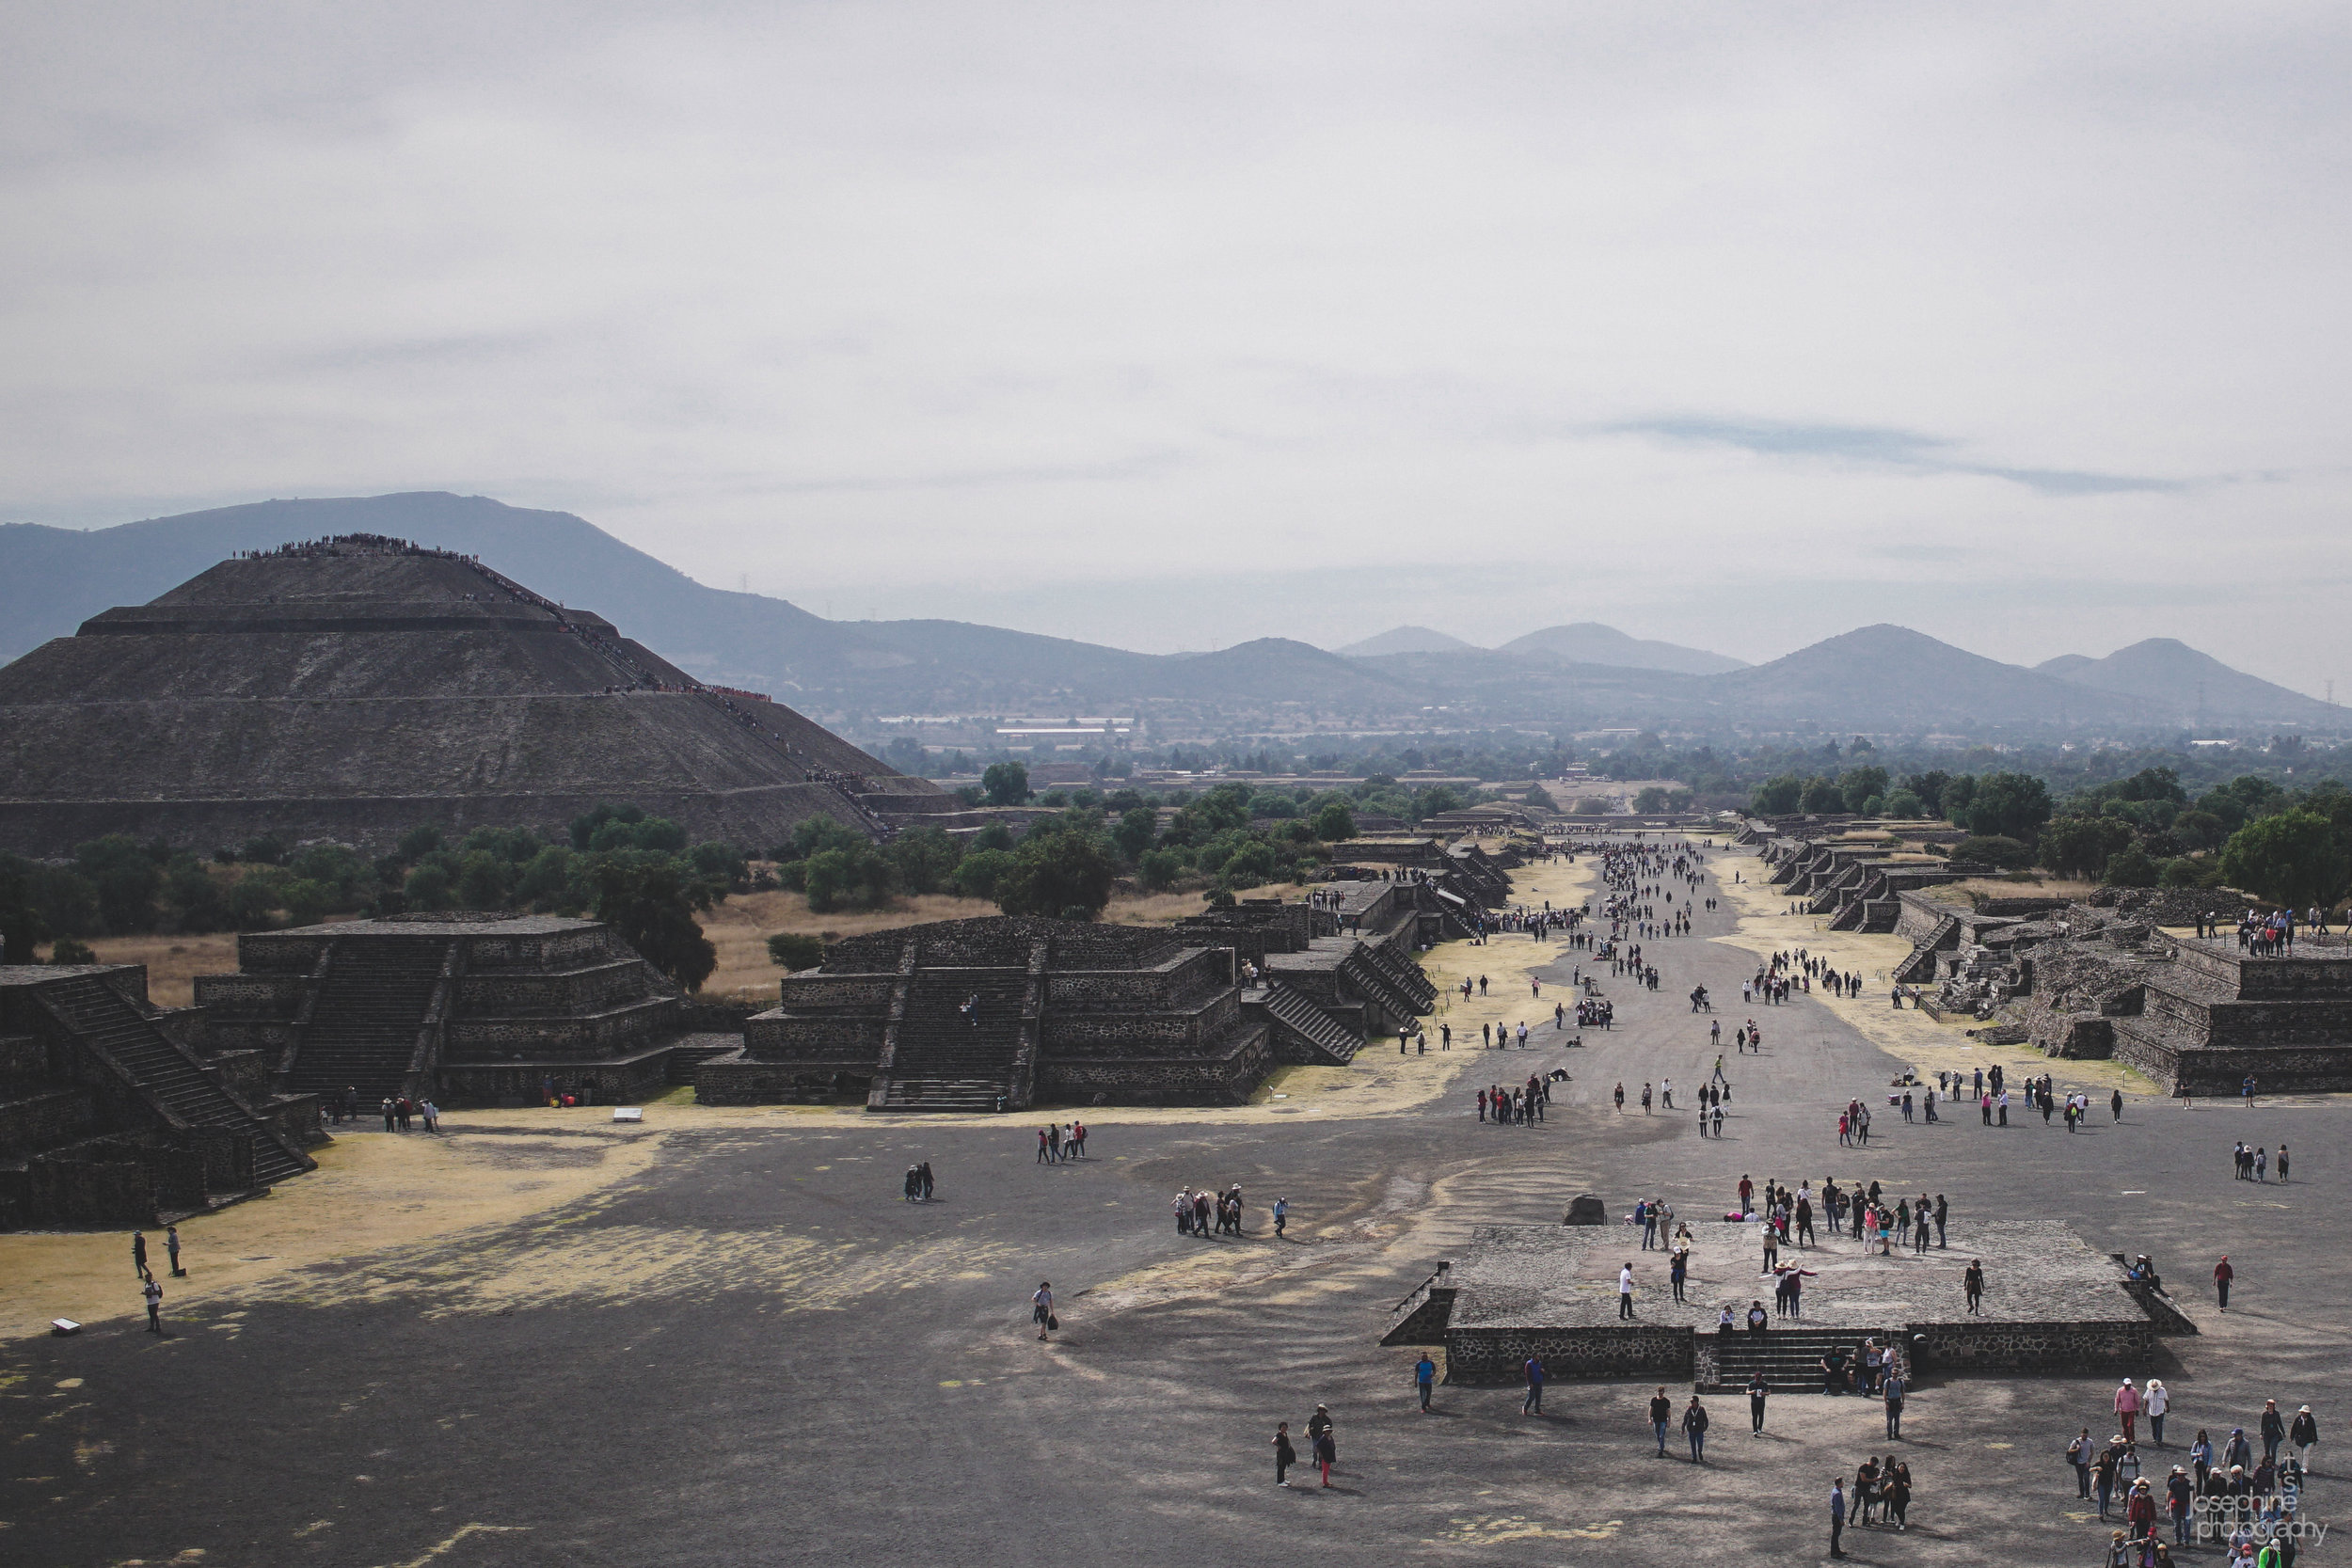 Pyramids of Teotihuacán